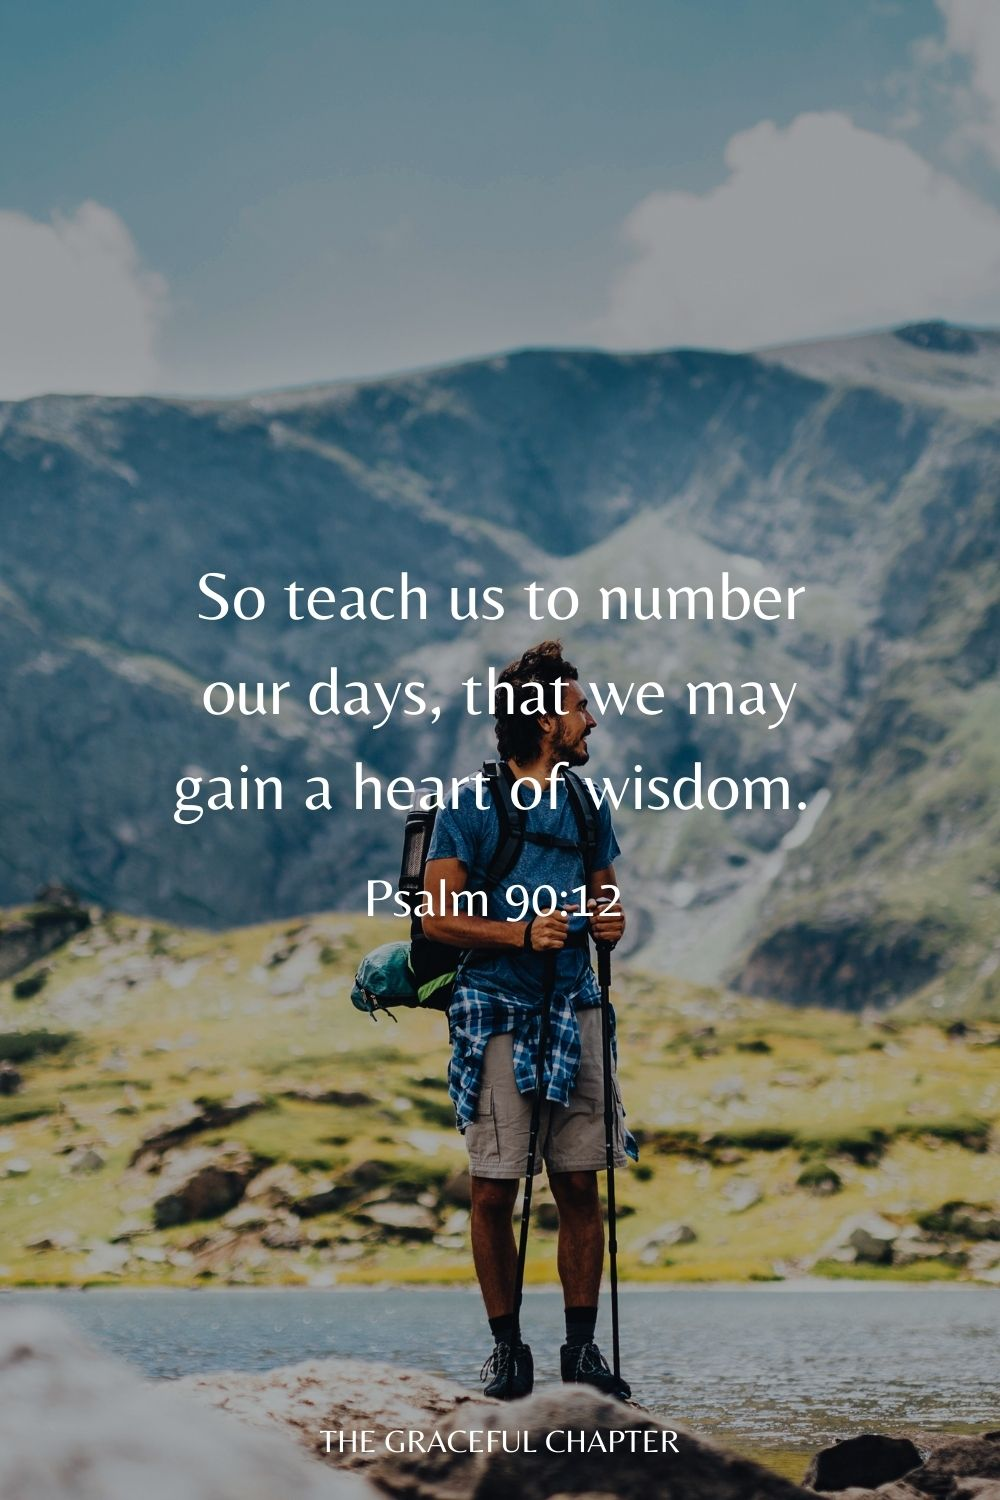 So teach us to number our days, That we may gain a heart of wisdom. Psalm 90:12